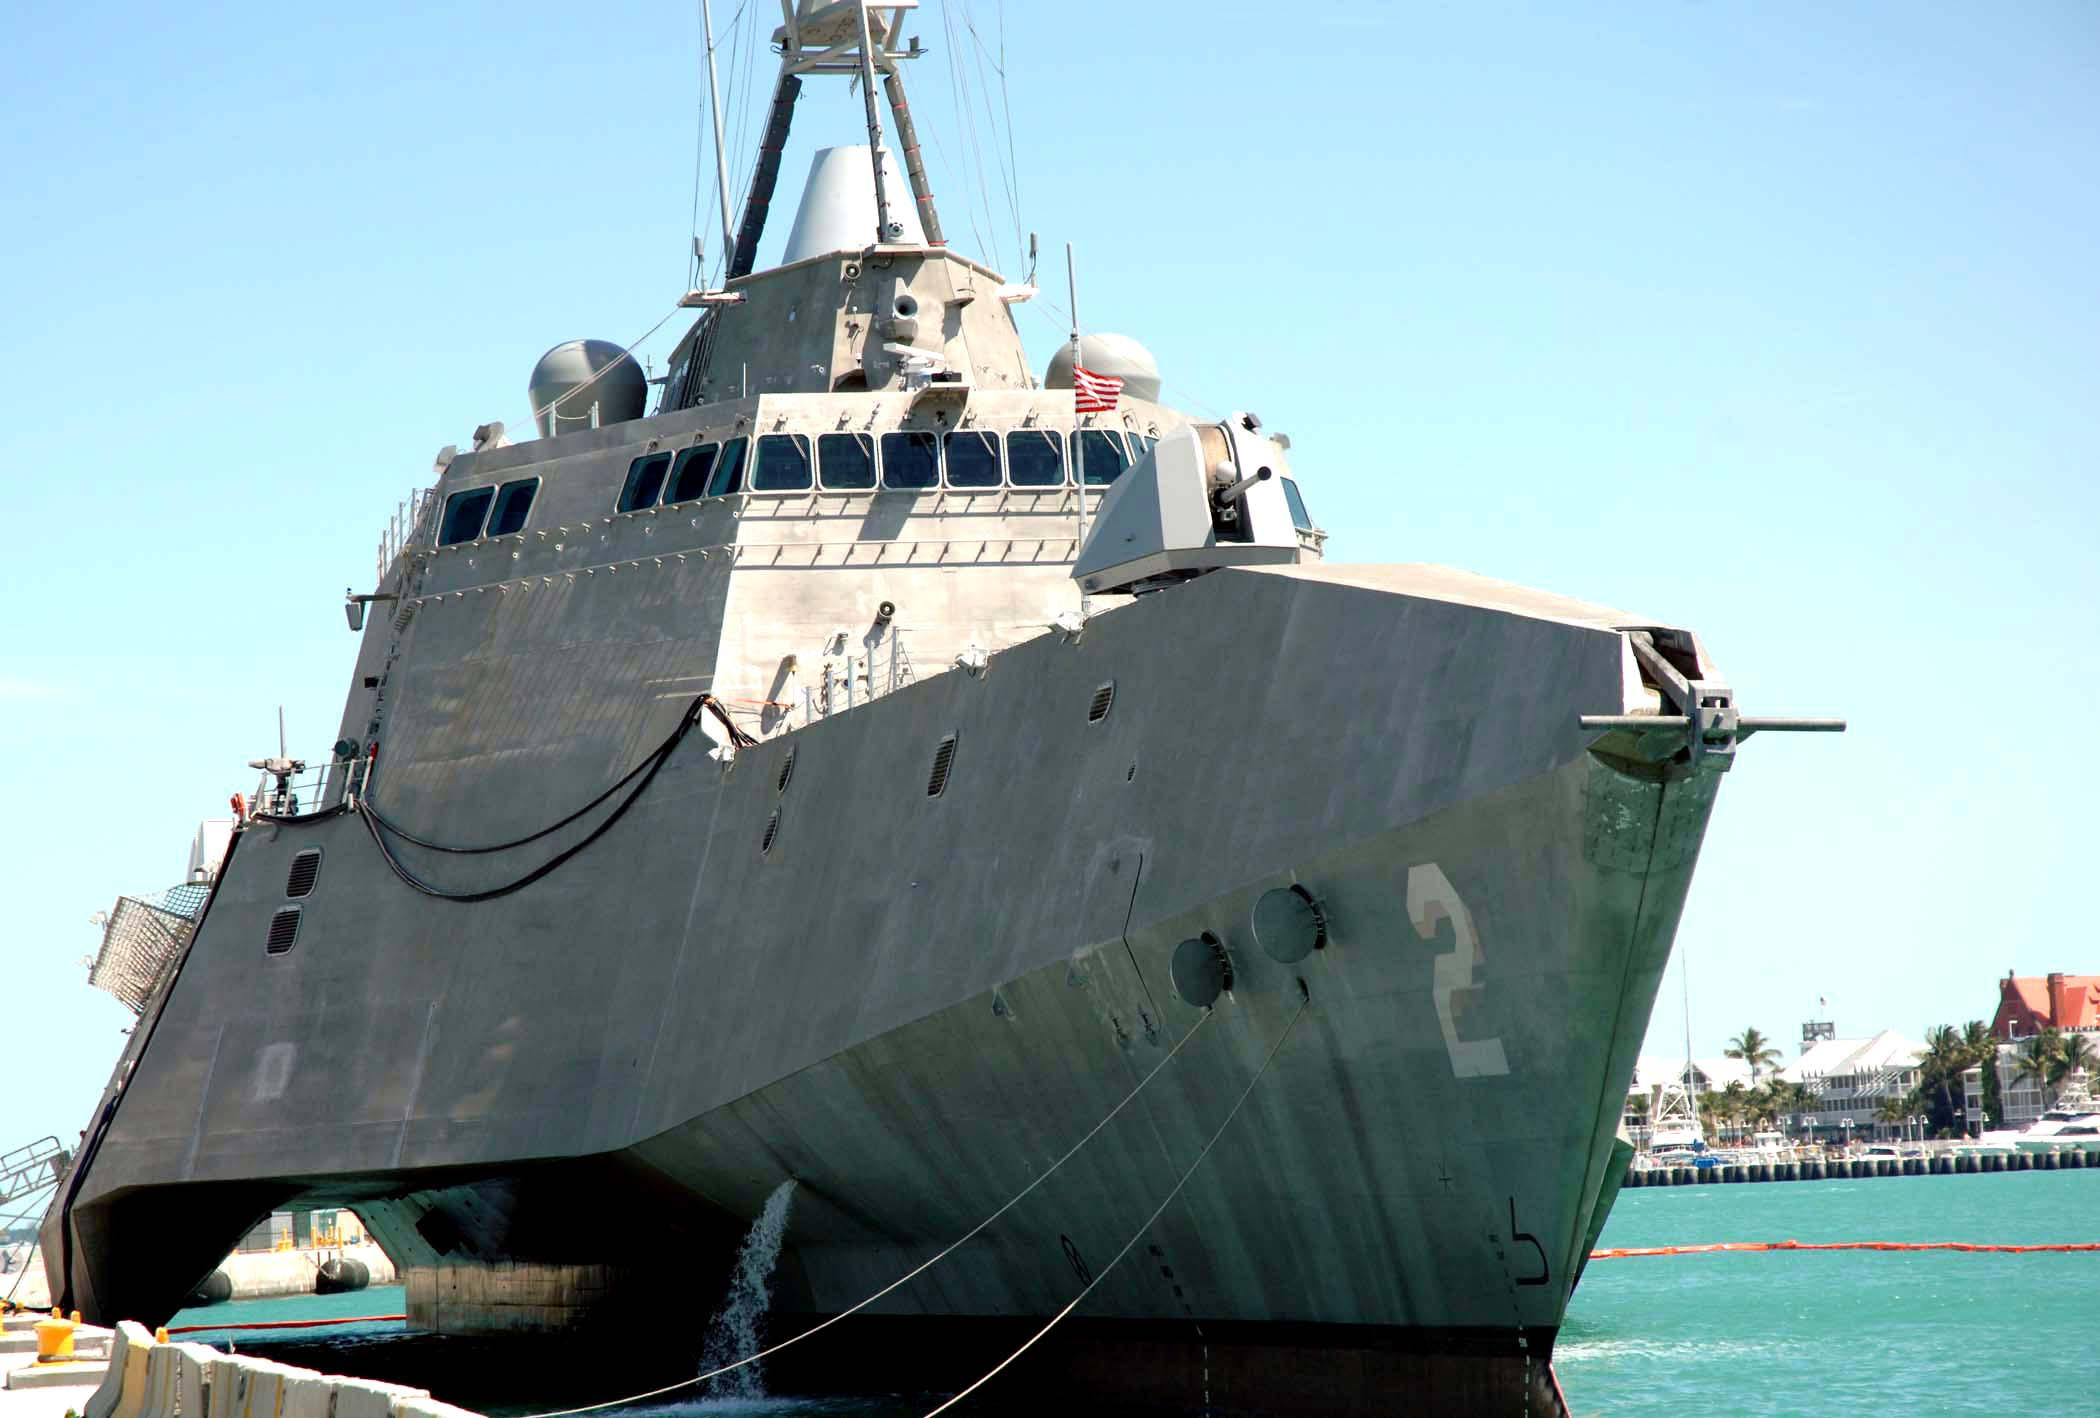 US_Navy_100331-N-1876H-044_USS_Independence_%28LCS_2%29_is_pier_side_during_a_port_visit_to_Key_West%2C_Fla.jpg